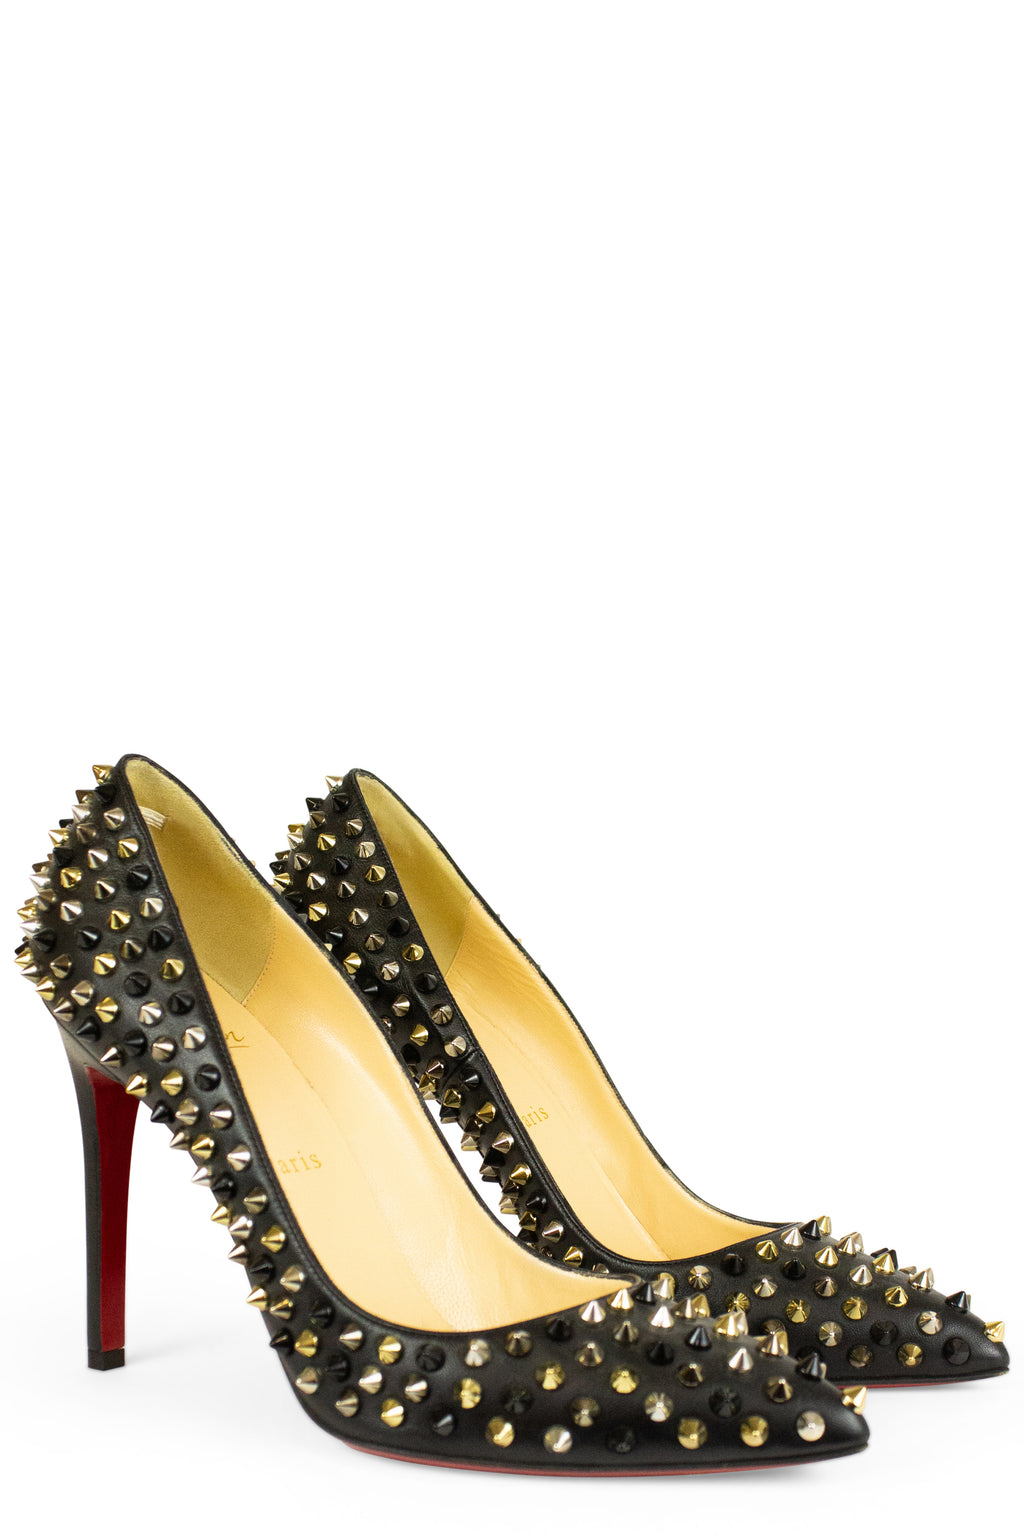 CHRISTIAN LOUBOUTIN Pigalle Spike Pumps